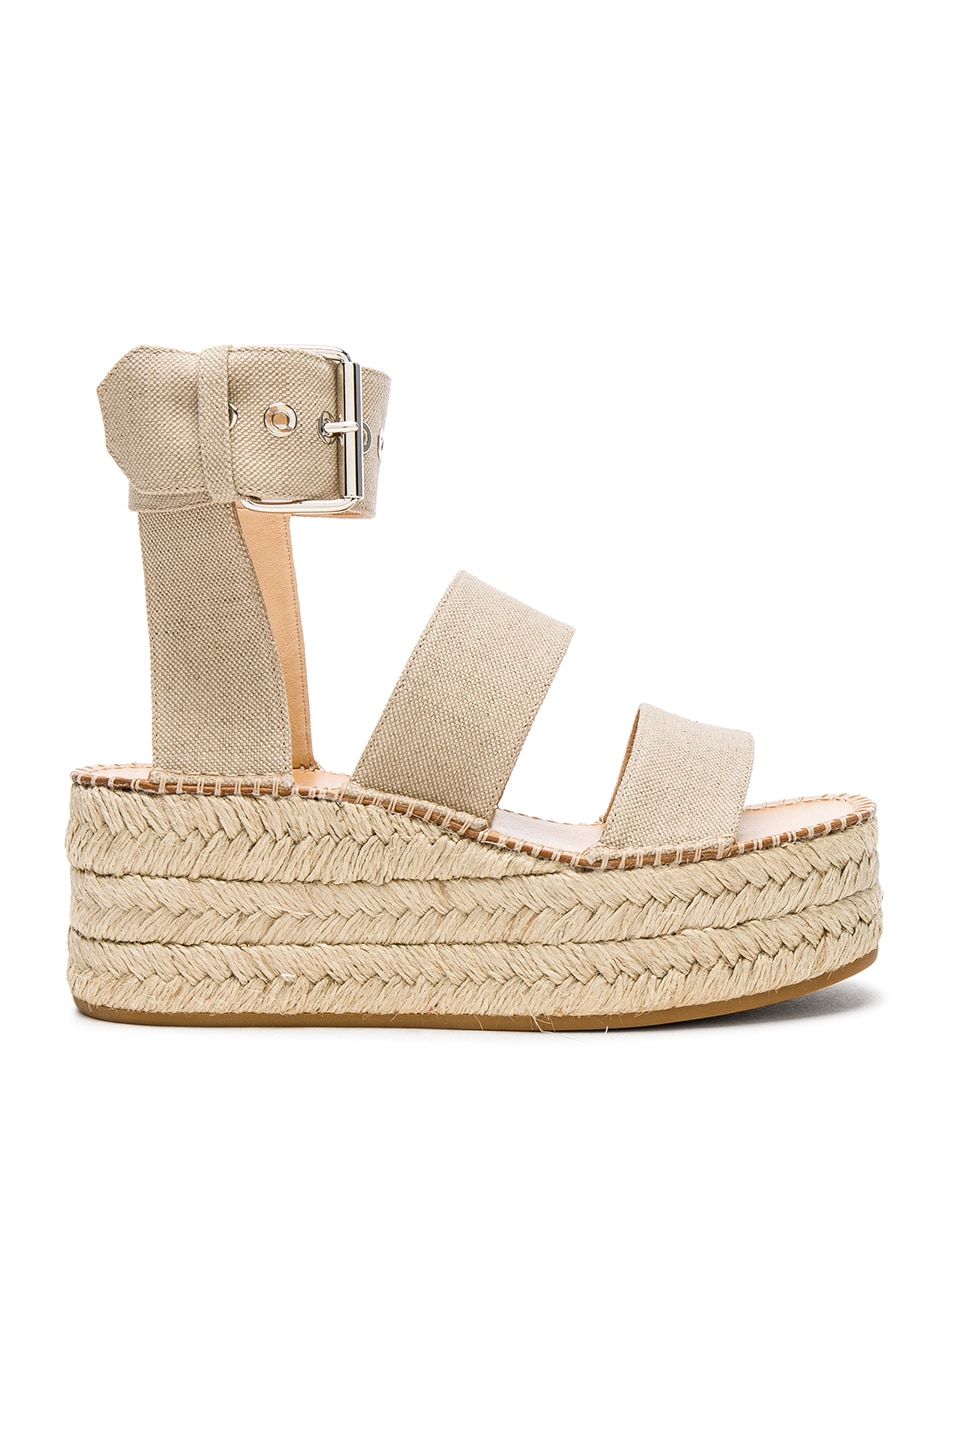 Image 1 of Rag & Bone Canvas Tara Sandals in Natural Canvas